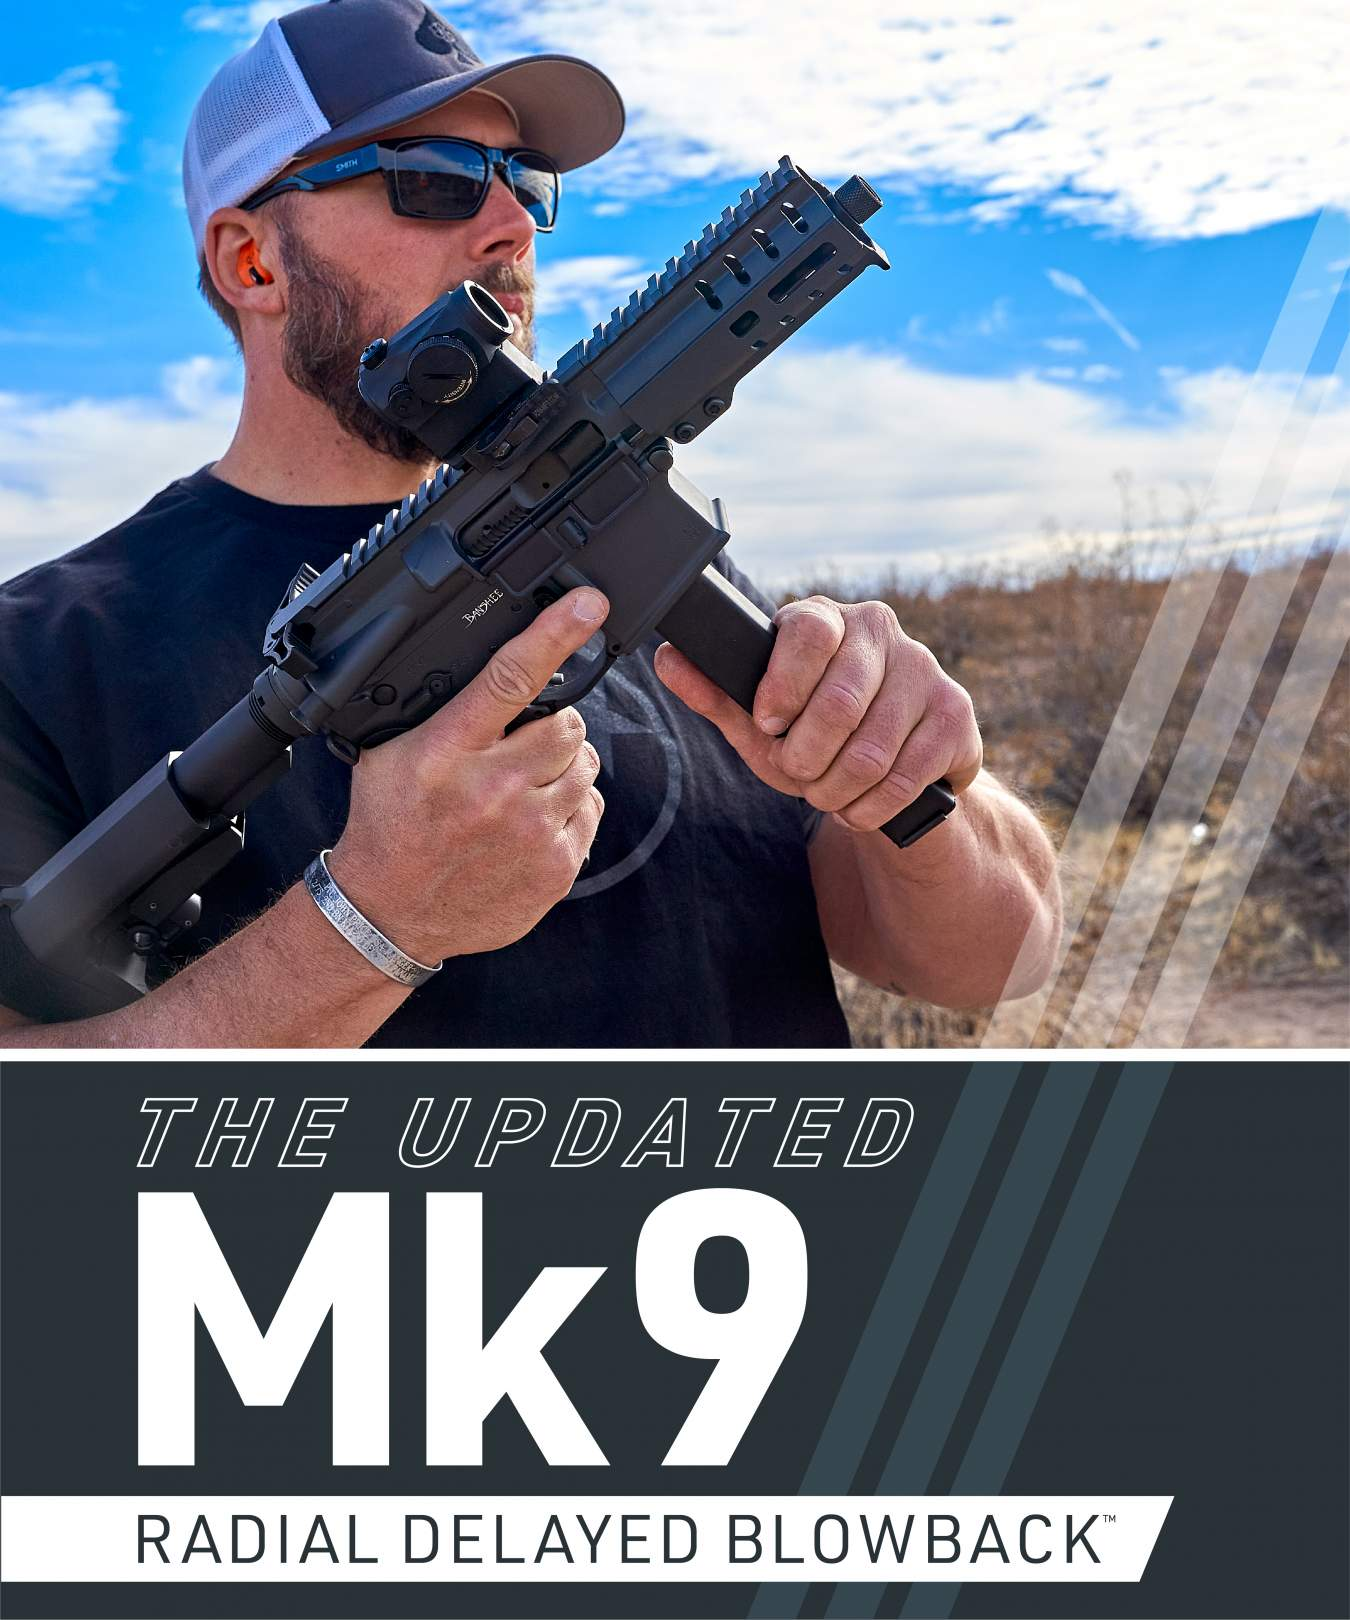 The Updated Mk9